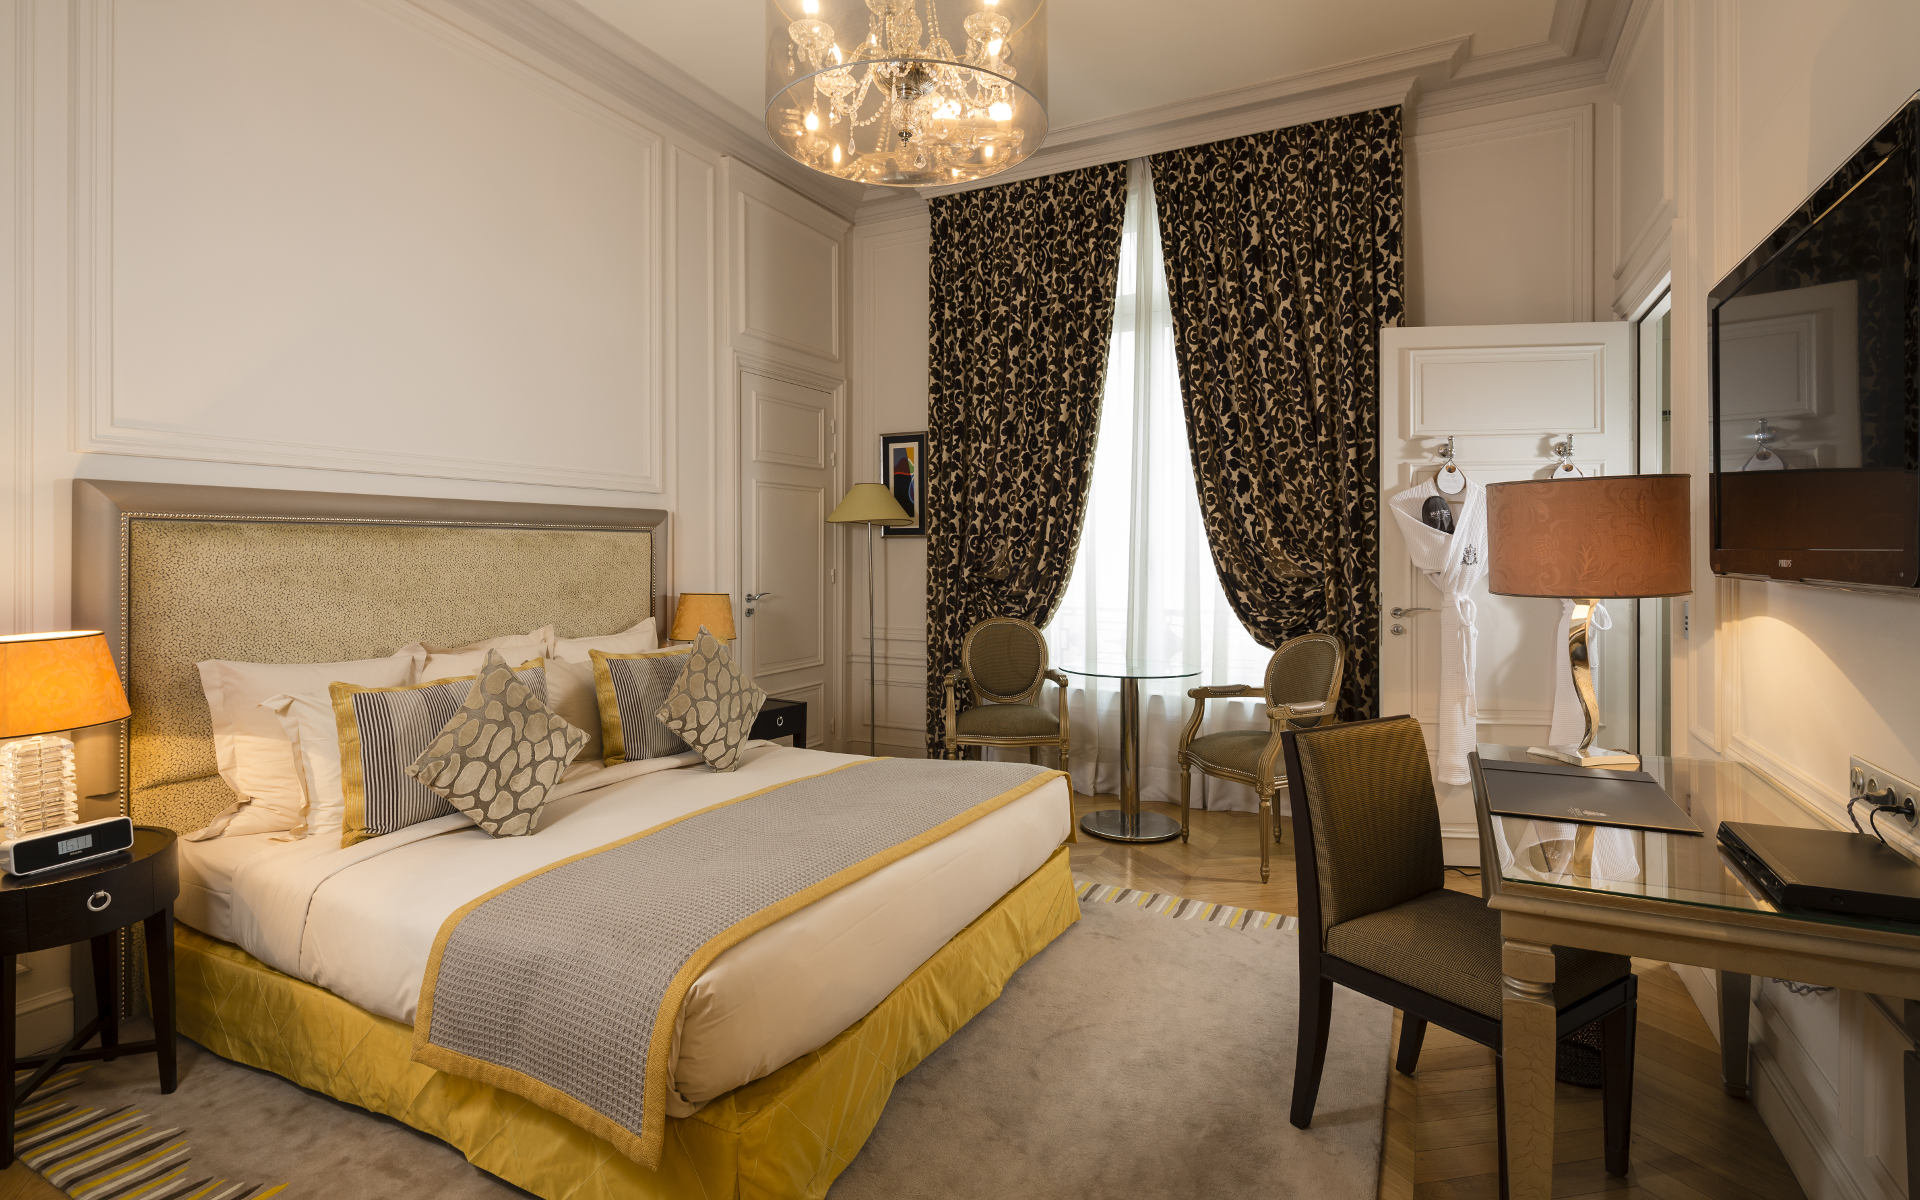 260/Rooms/Grand deluxe/Room_Grand_Deluxe_2-__Majestic_Hotel-Spa.jpg